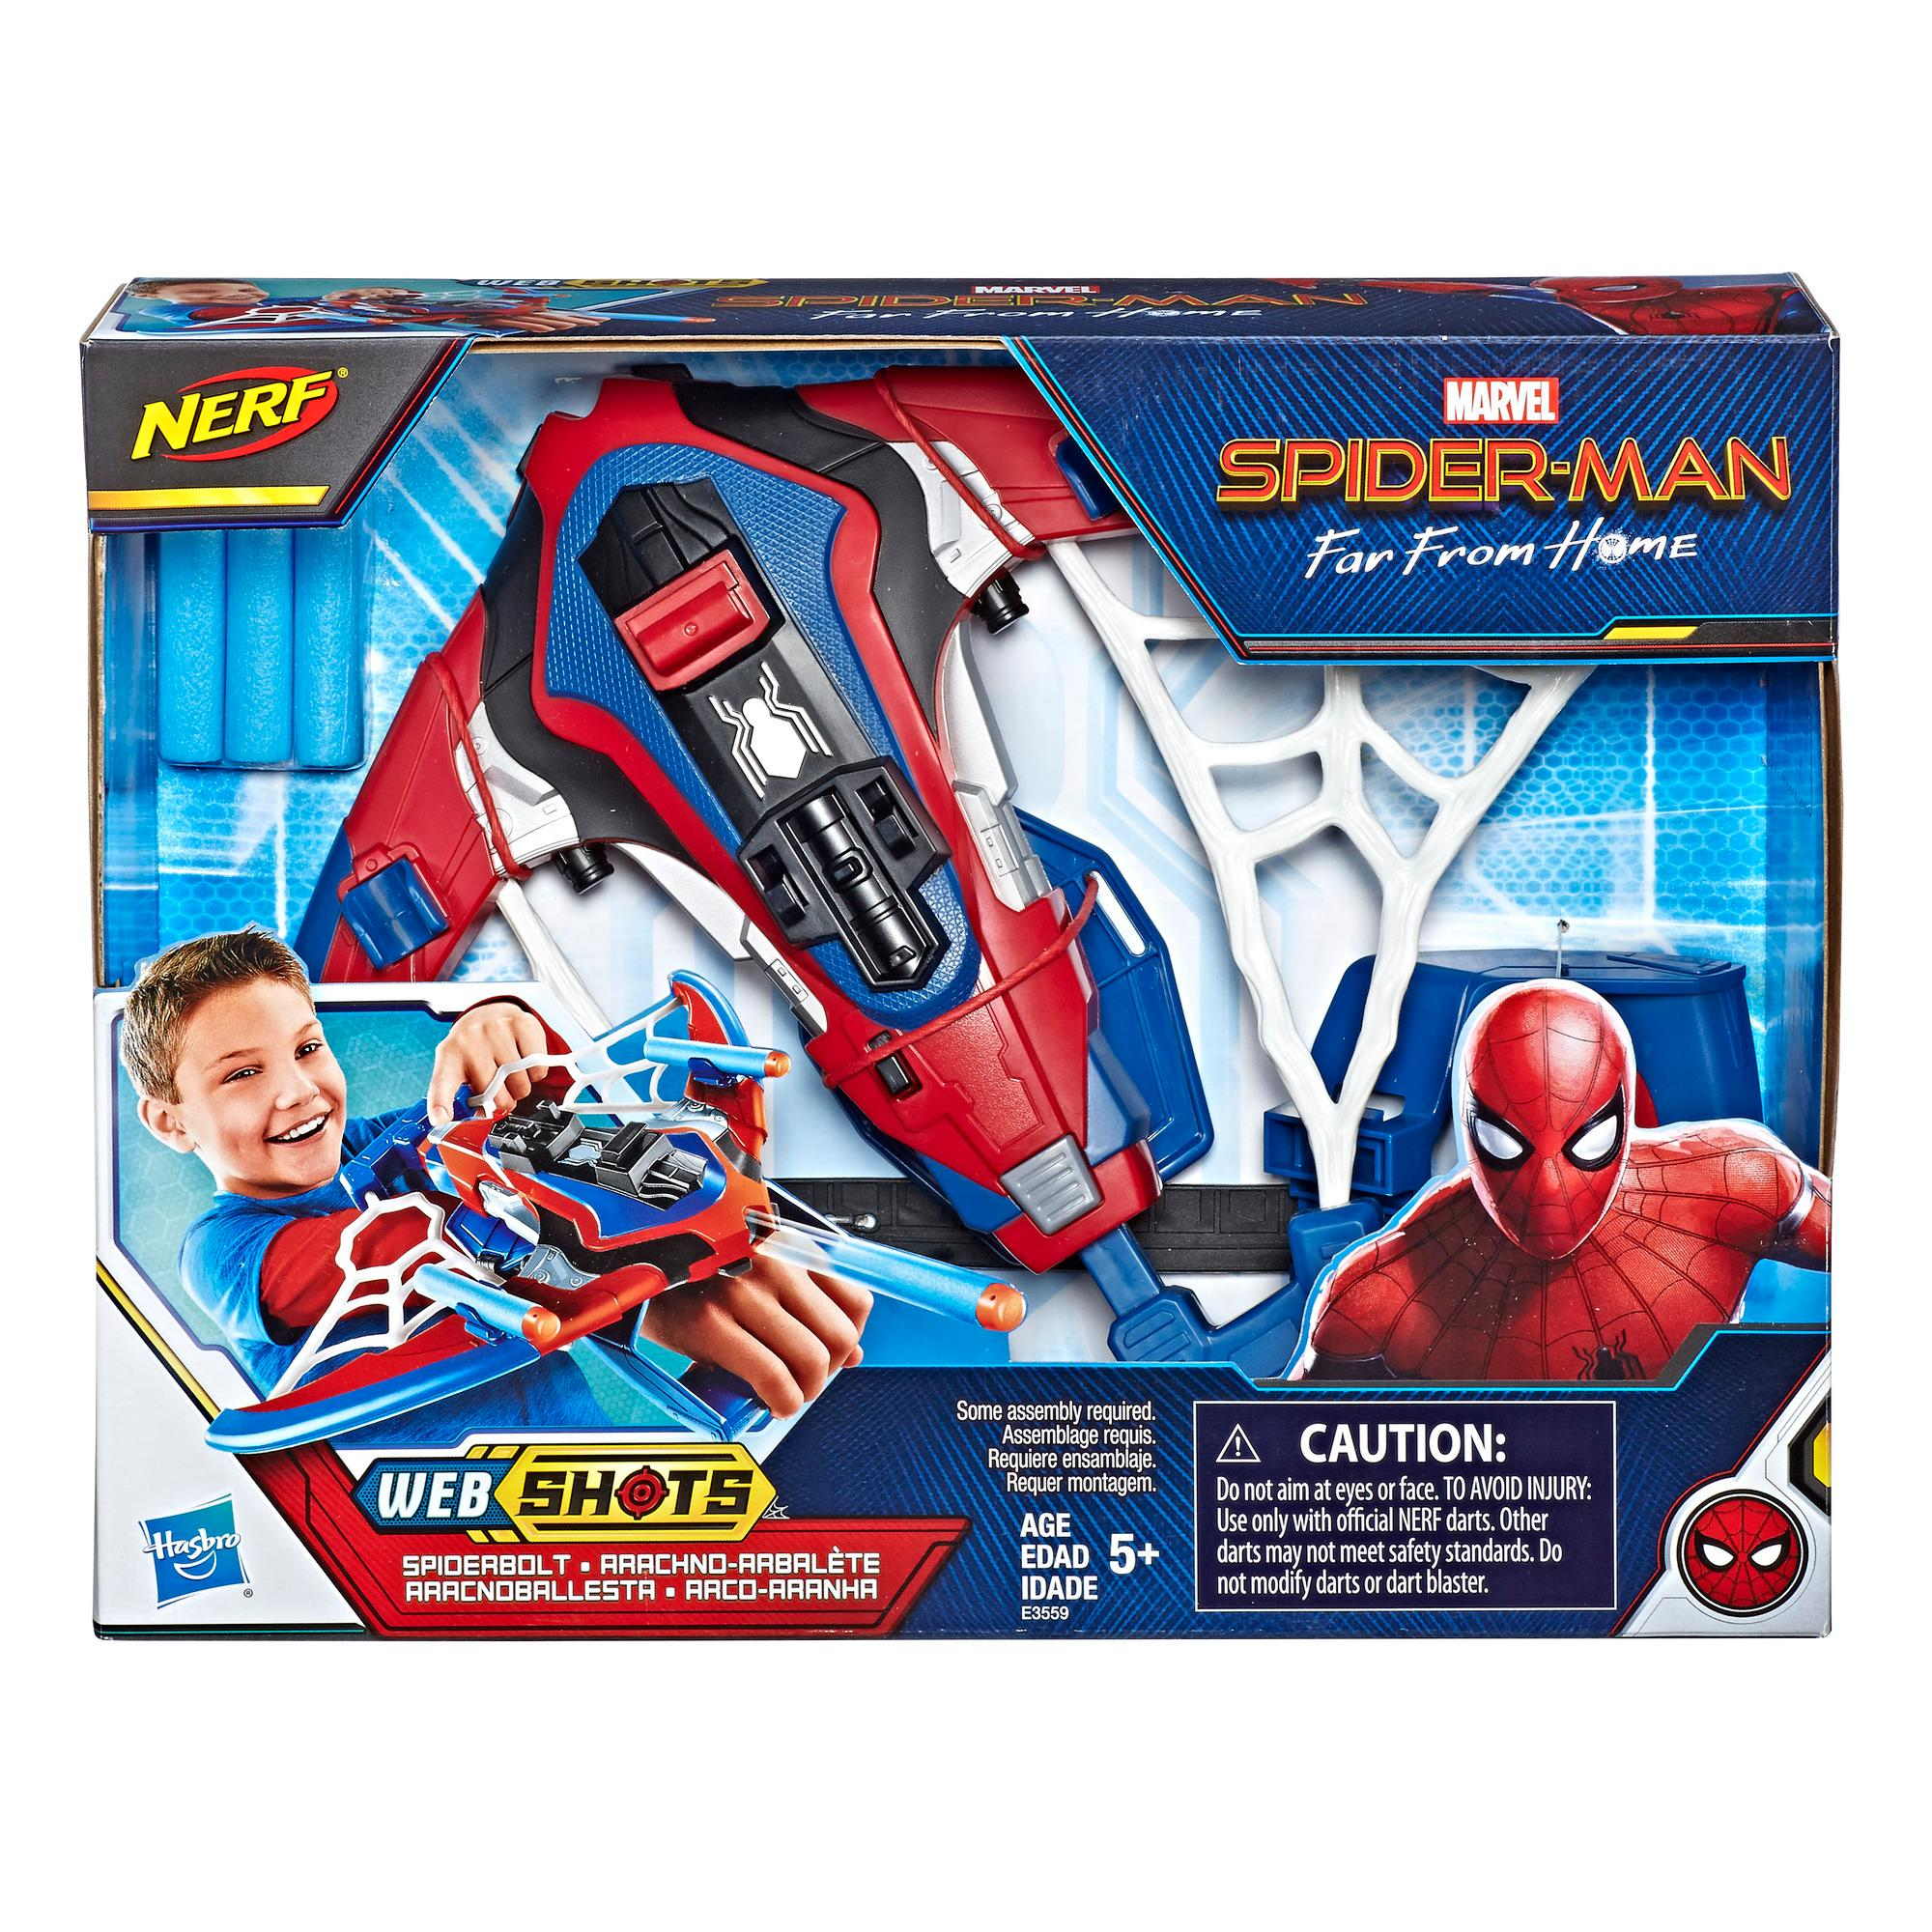 Spider-Man Web Shots Spiderbolt NERF Powered Blaster Toy for Kids Ages 5 and Up